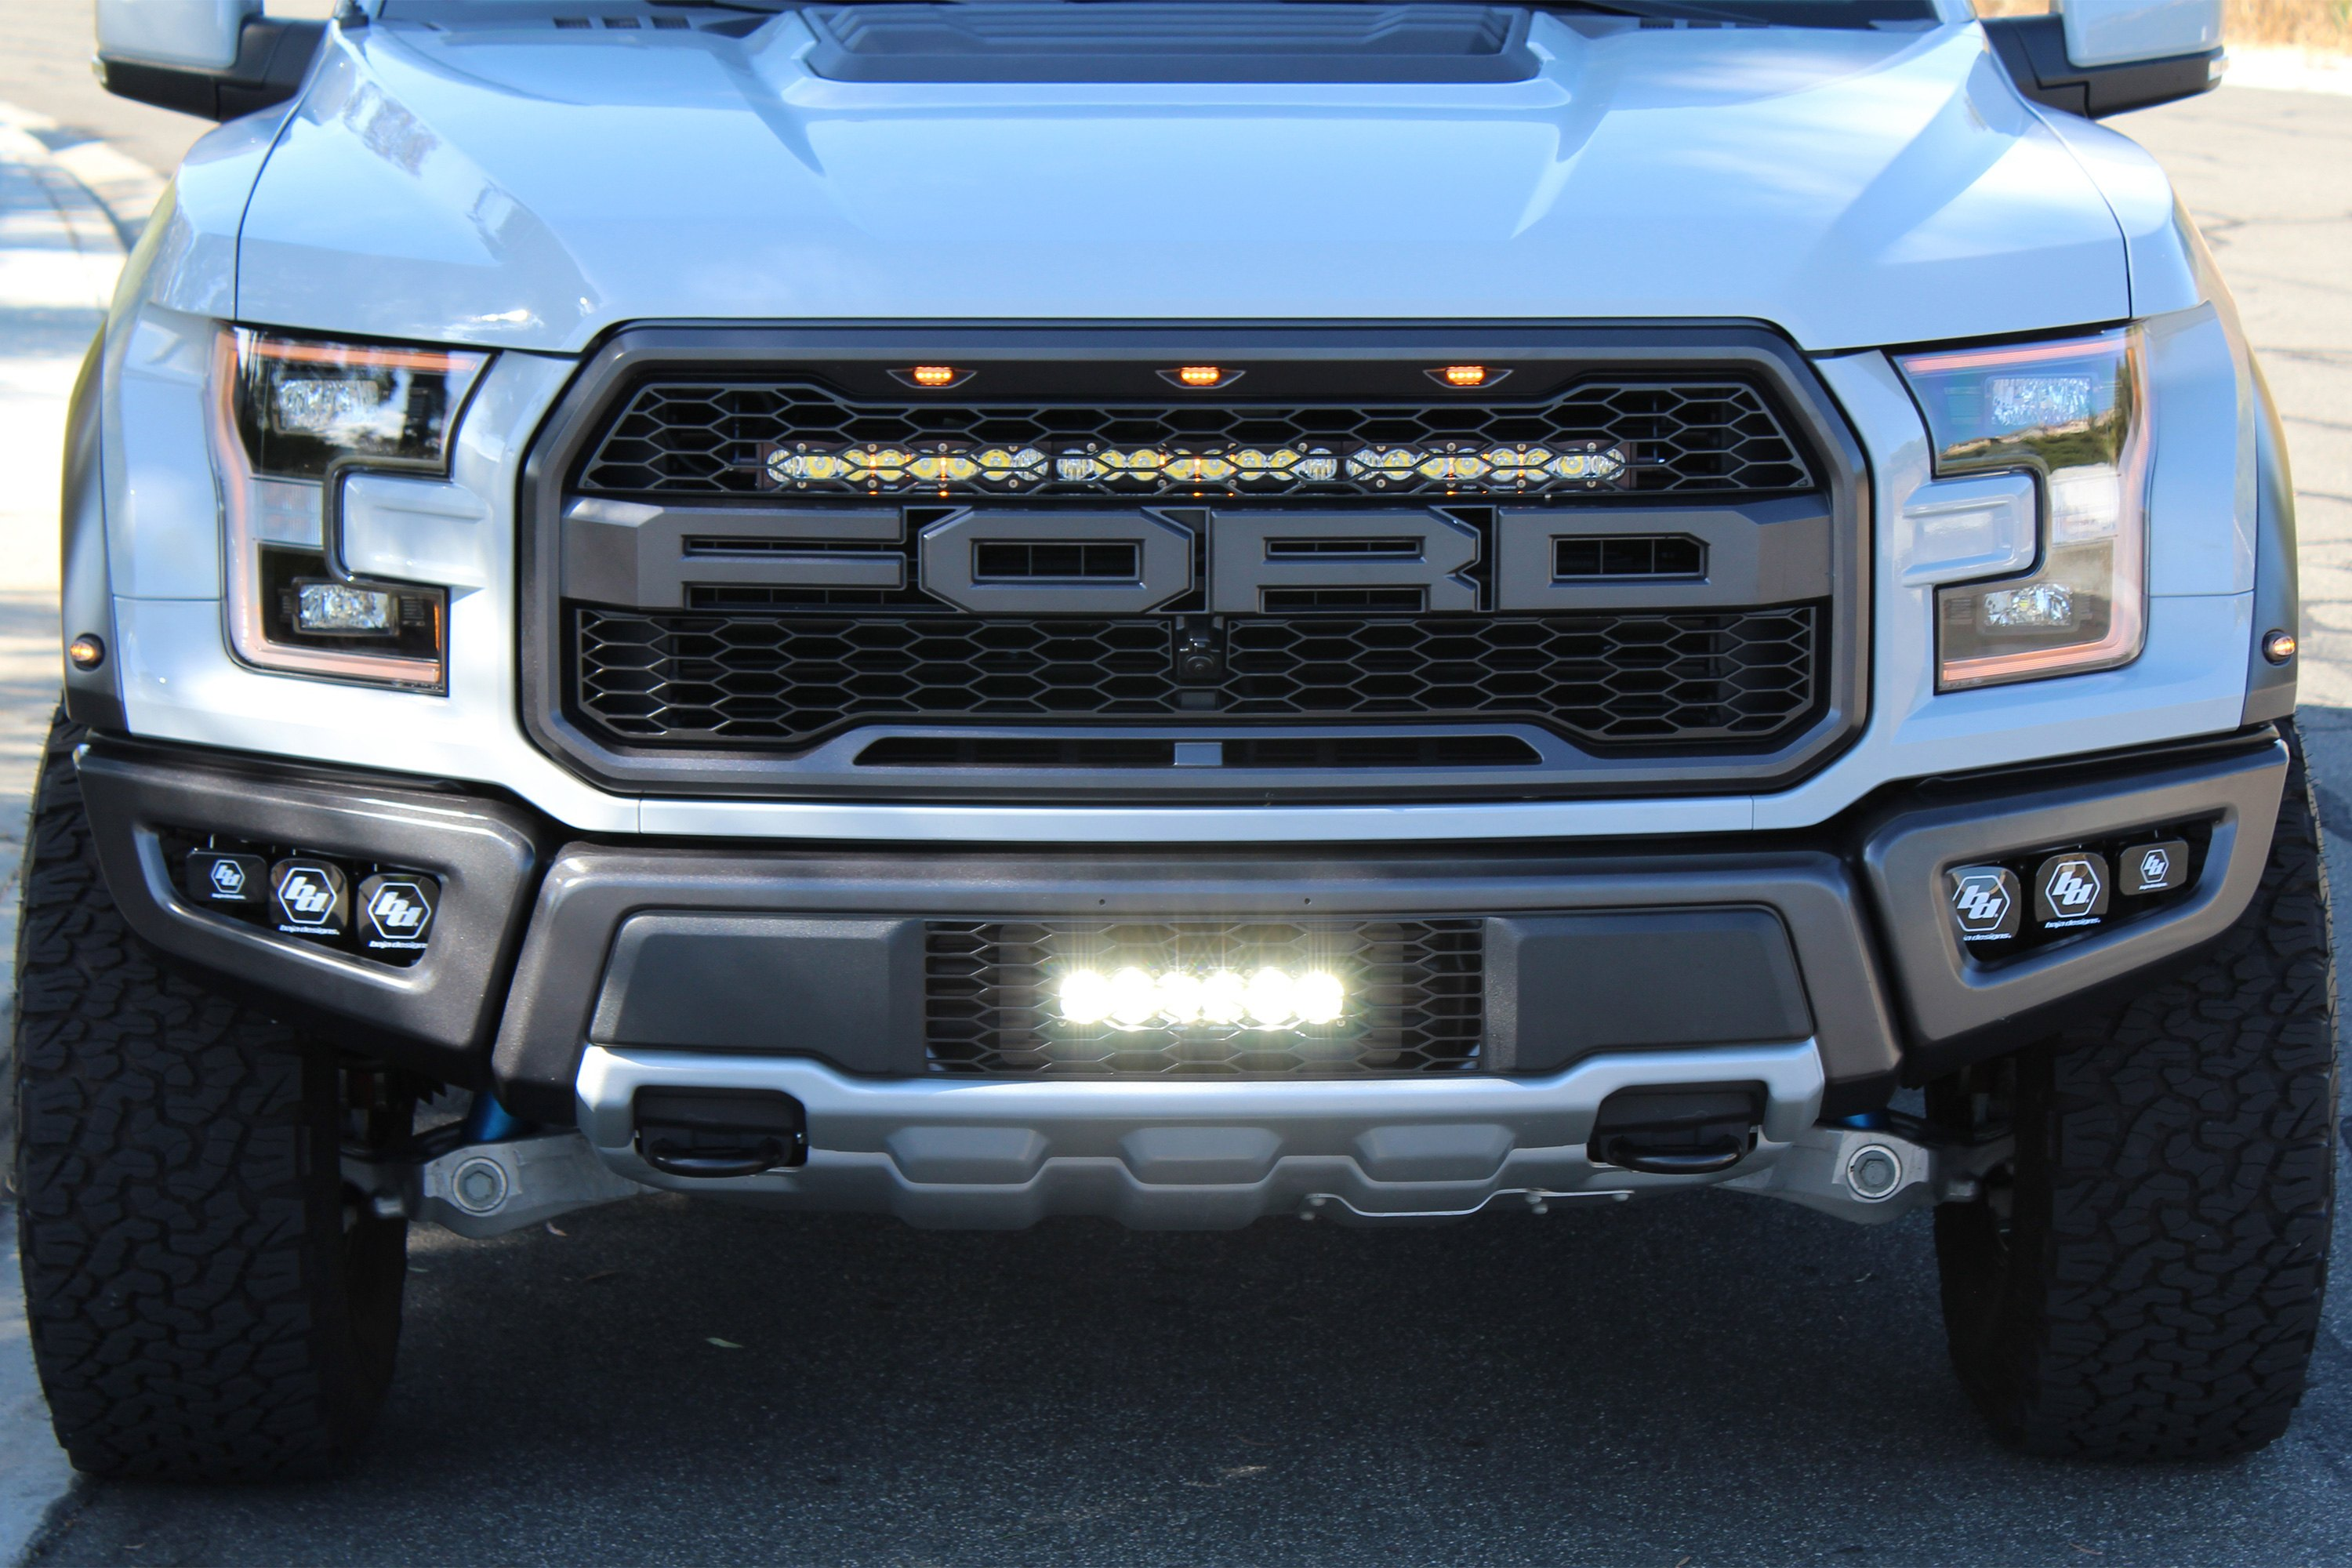 Baja designs onx6 high power drivingcombo beam led light bar designs onx6 high power led light bar aloadofball Image collections